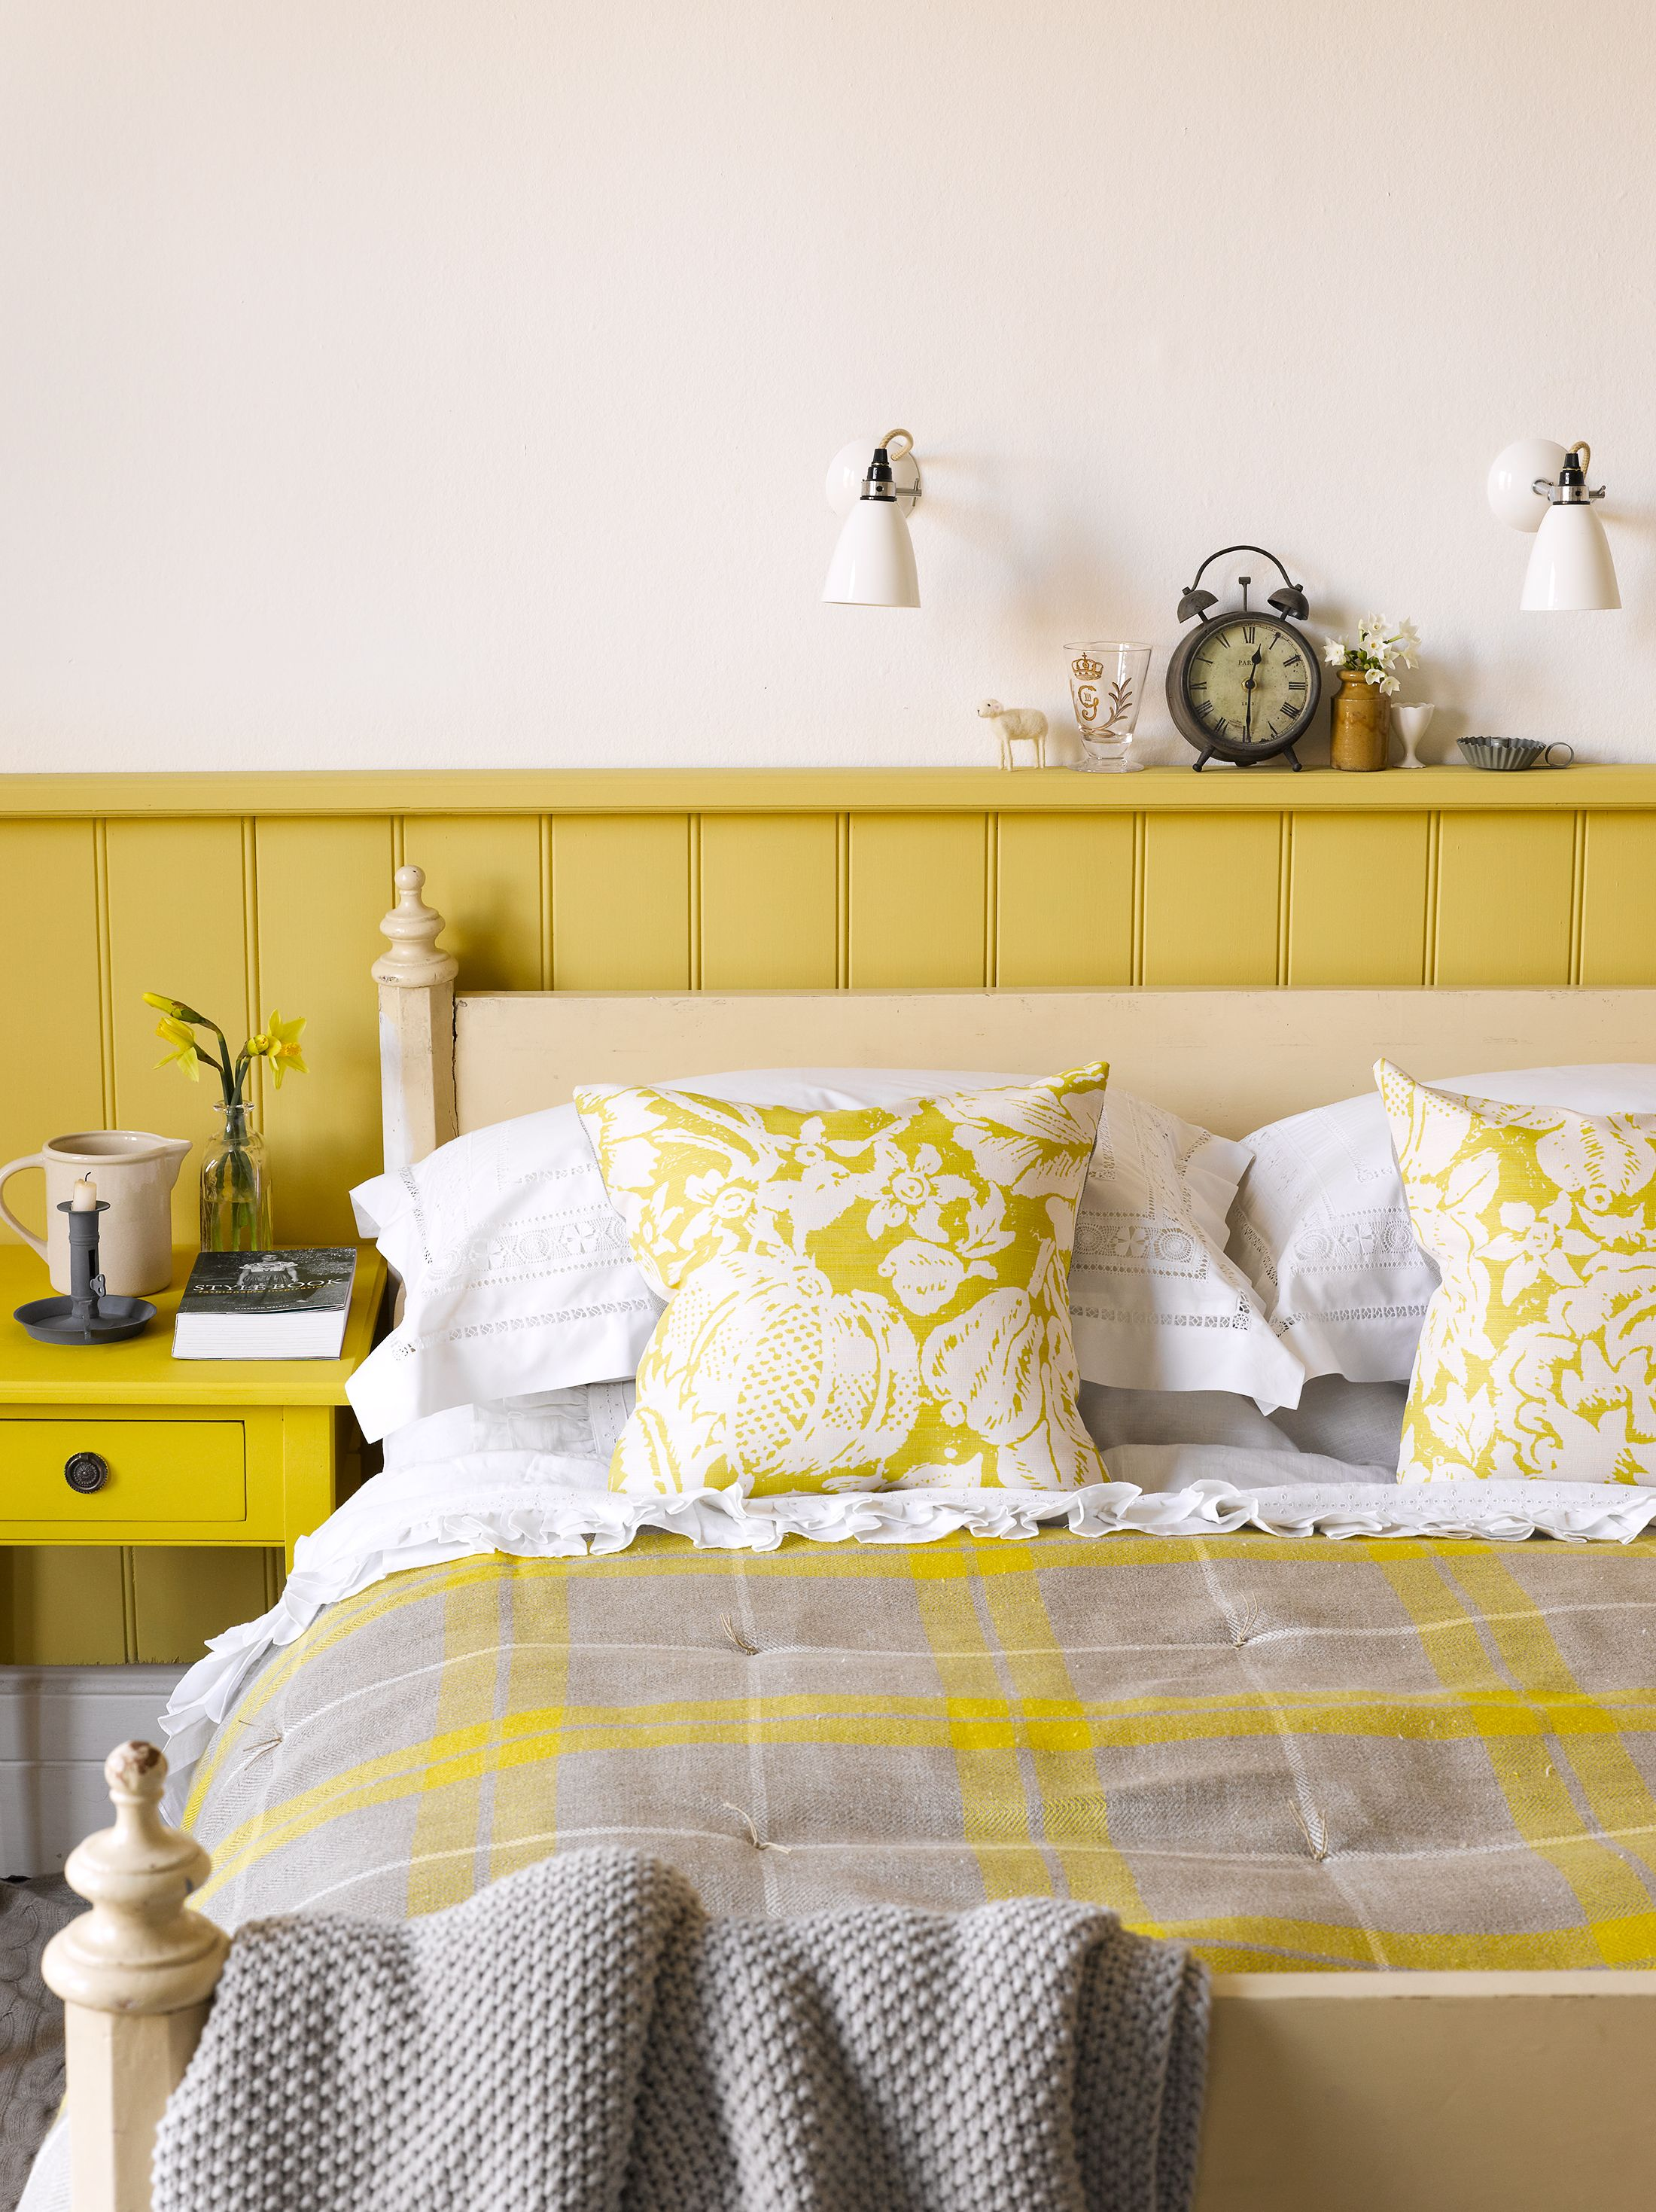 3 Cheerful Yellow Bedrooms - Chic Ideas for Yellow Bedroom Decor